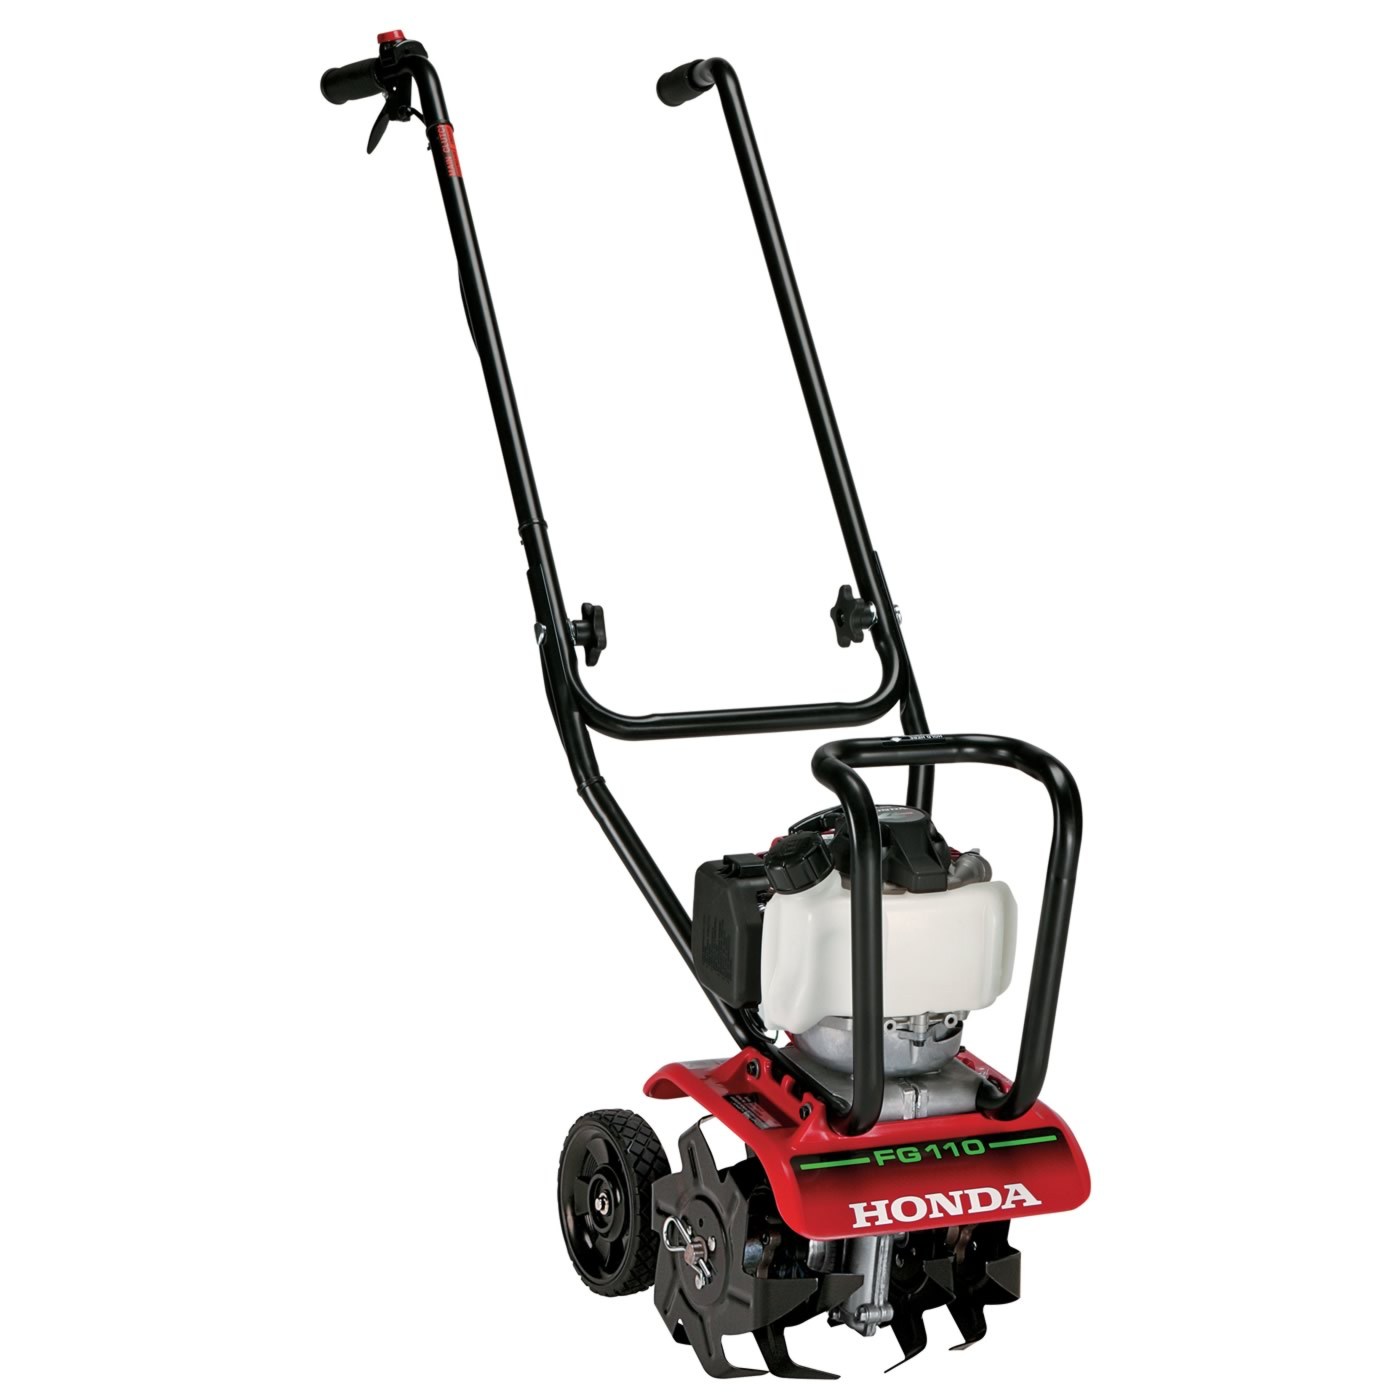 Honda Tiller Accessories Shank 39 S Lawn Blog